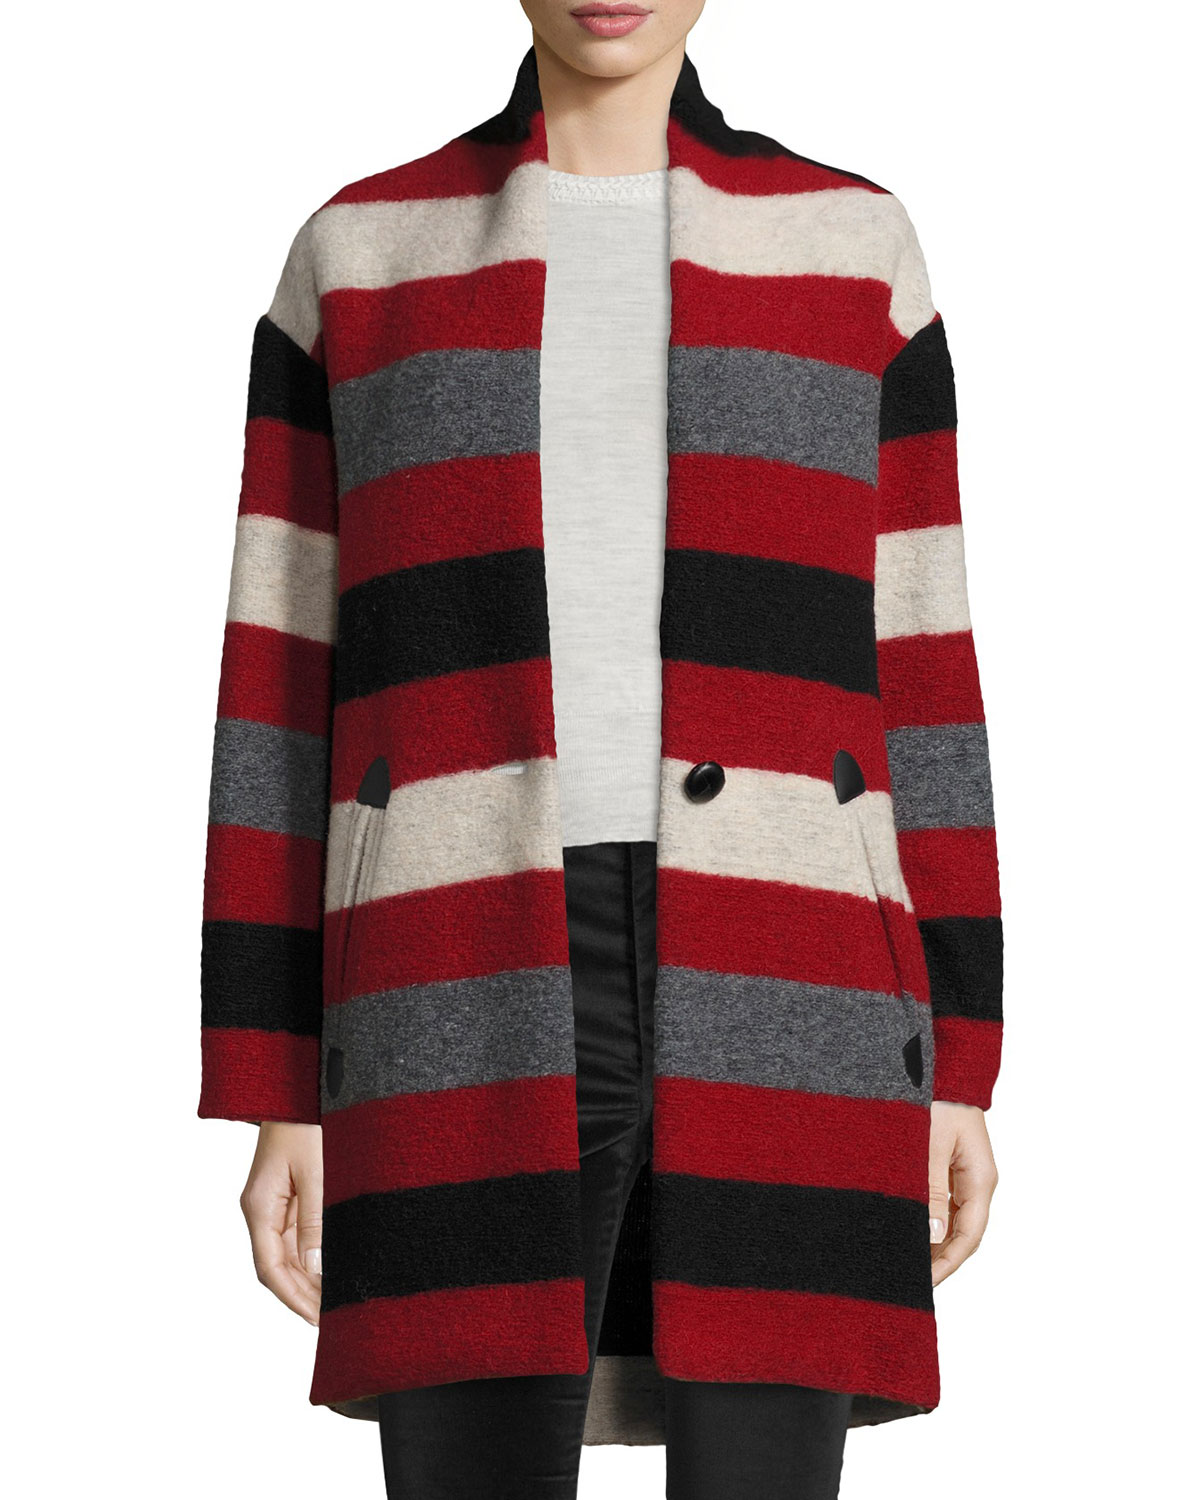 Gabrie Striped Blanket Coat